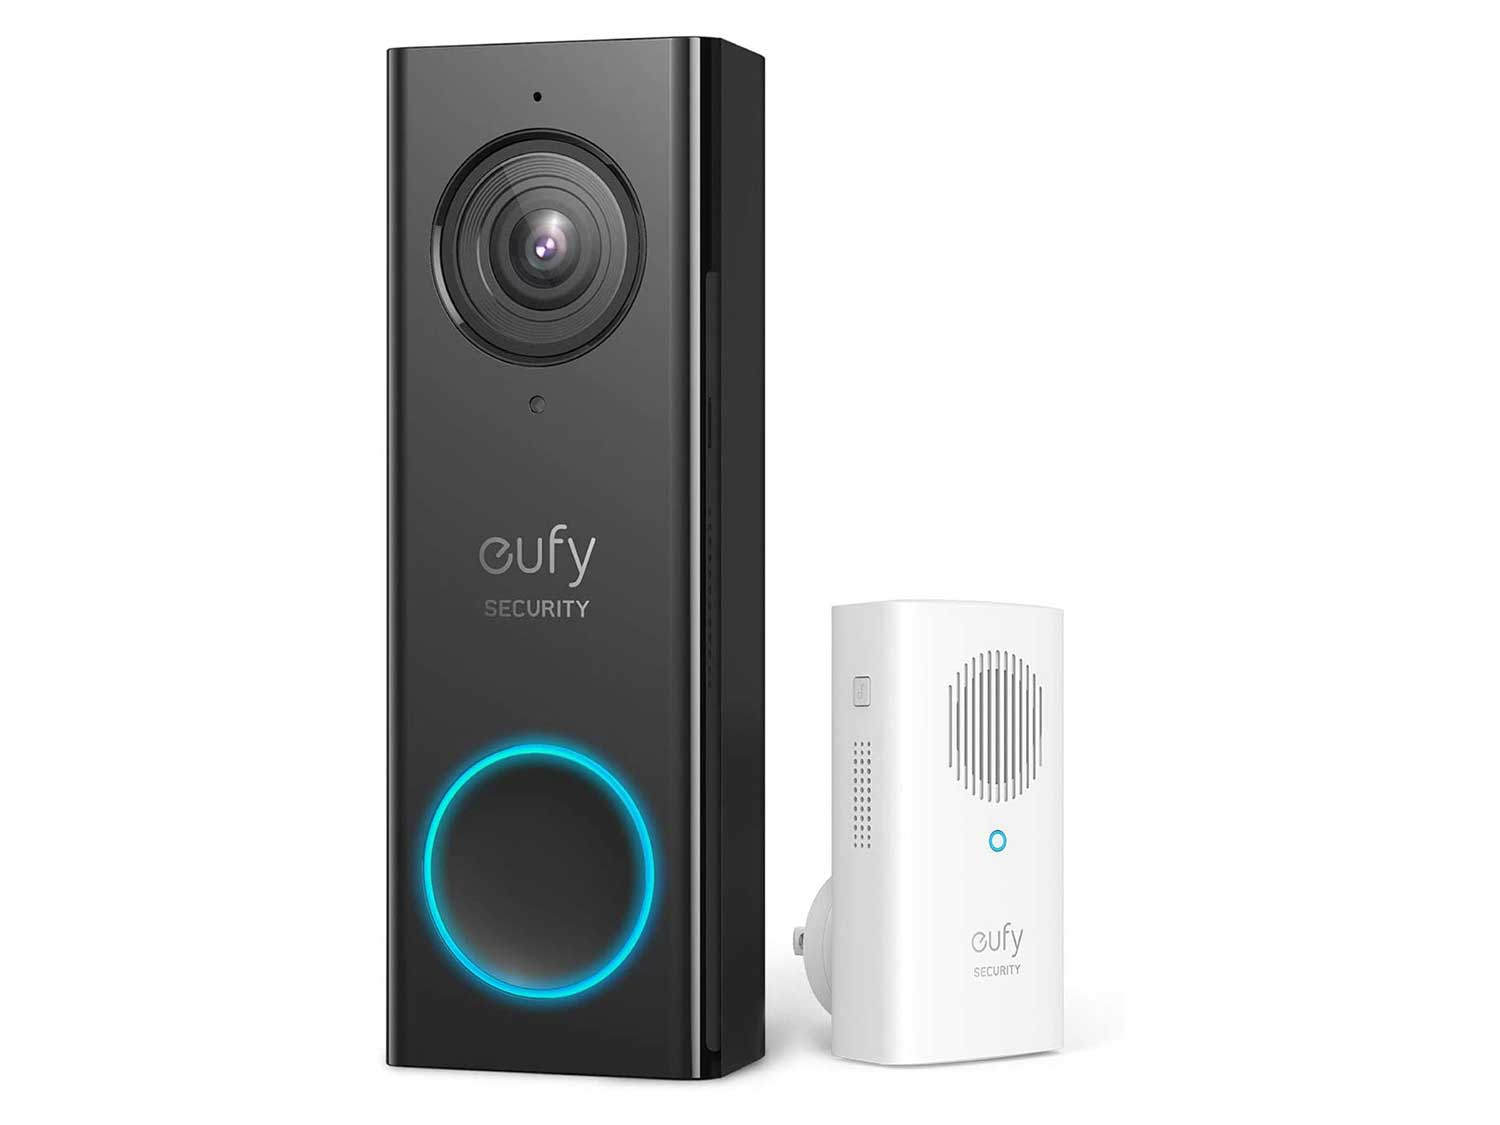 eufy Security, Wi-Fi Video Doorbell, 2K Resolution, No Monthly Fees, Secure Local Storage, Human Detection, 2-Way Audio, Free Wireless Chime-Requires Existing Doorbell Wires